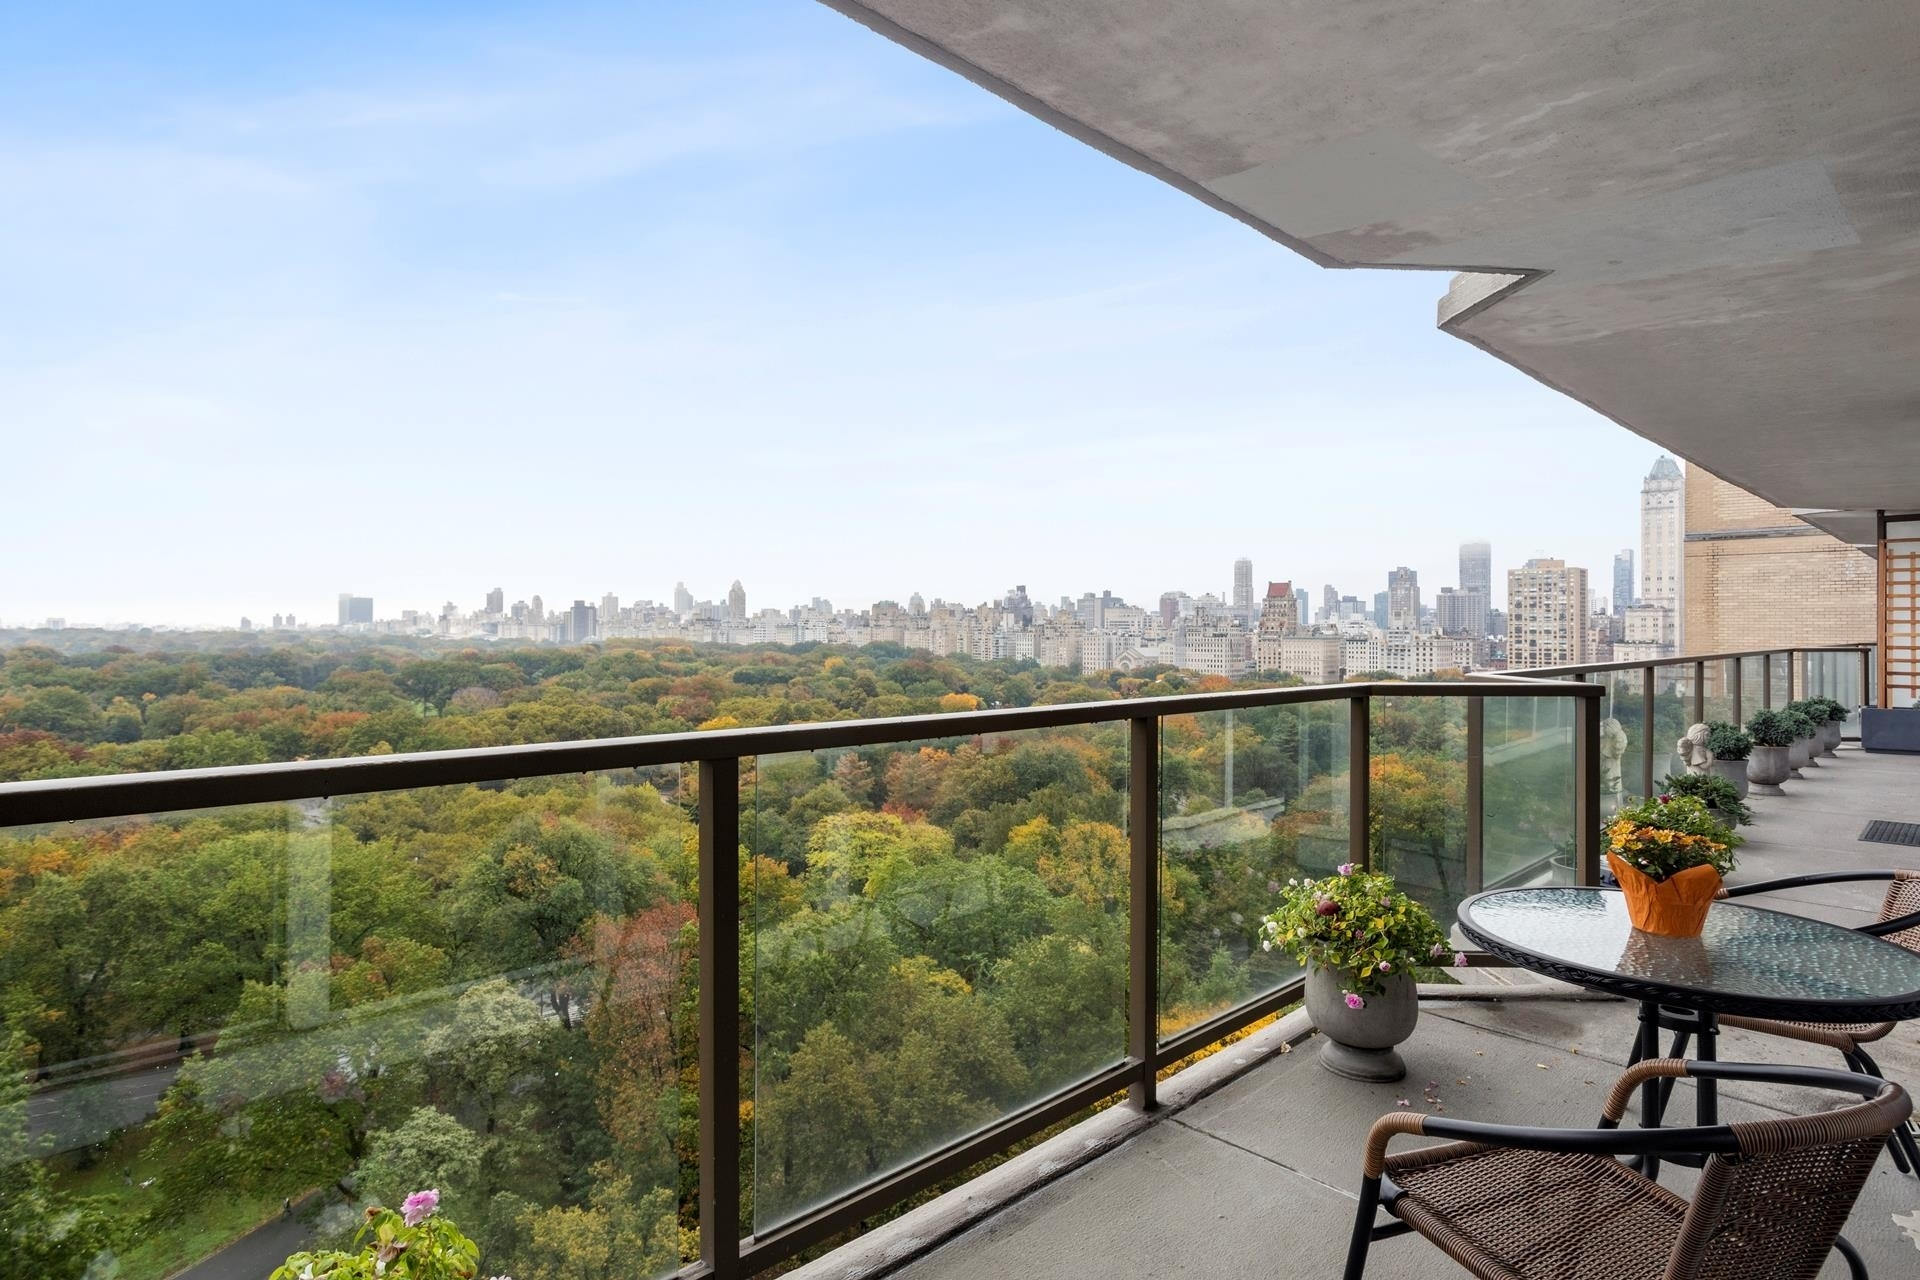 Property at 210 CENTRAL PARK S, 18AB Central Park South, New York, NY 10019